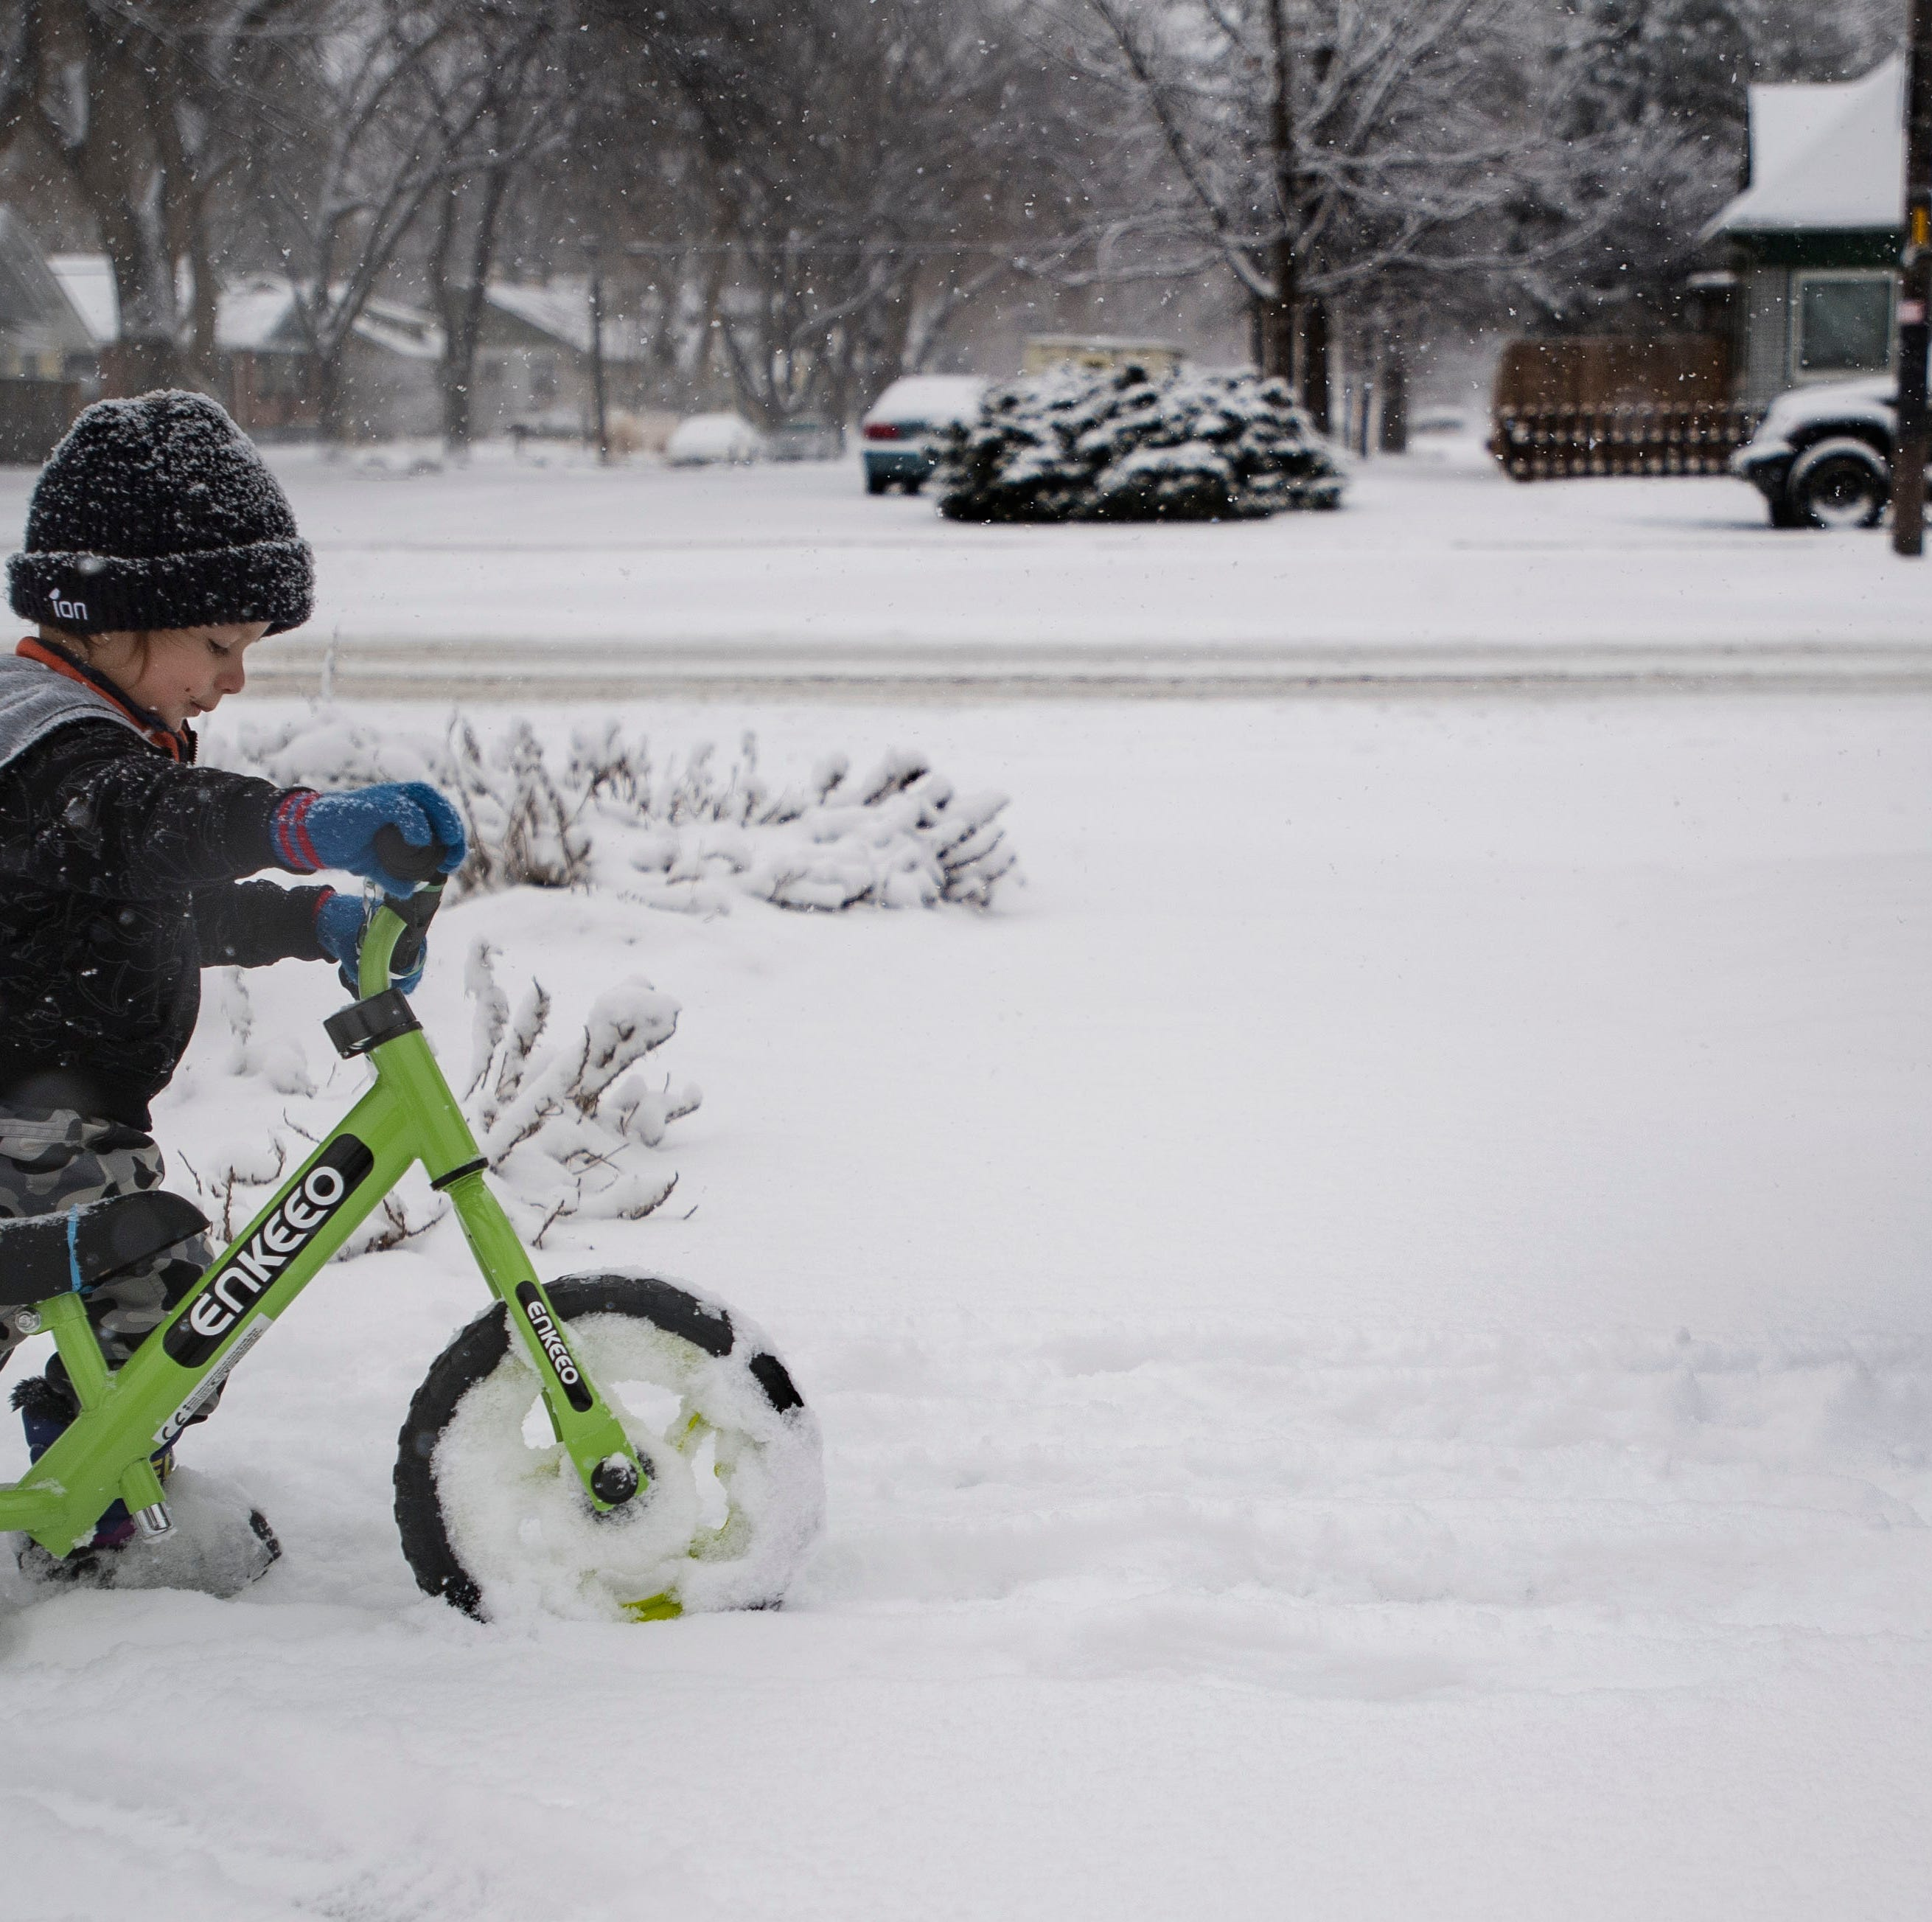 Northern Colorado snow closures: Poudre, Thompson, Weld RE-4 school districts cancel school on Wednesday